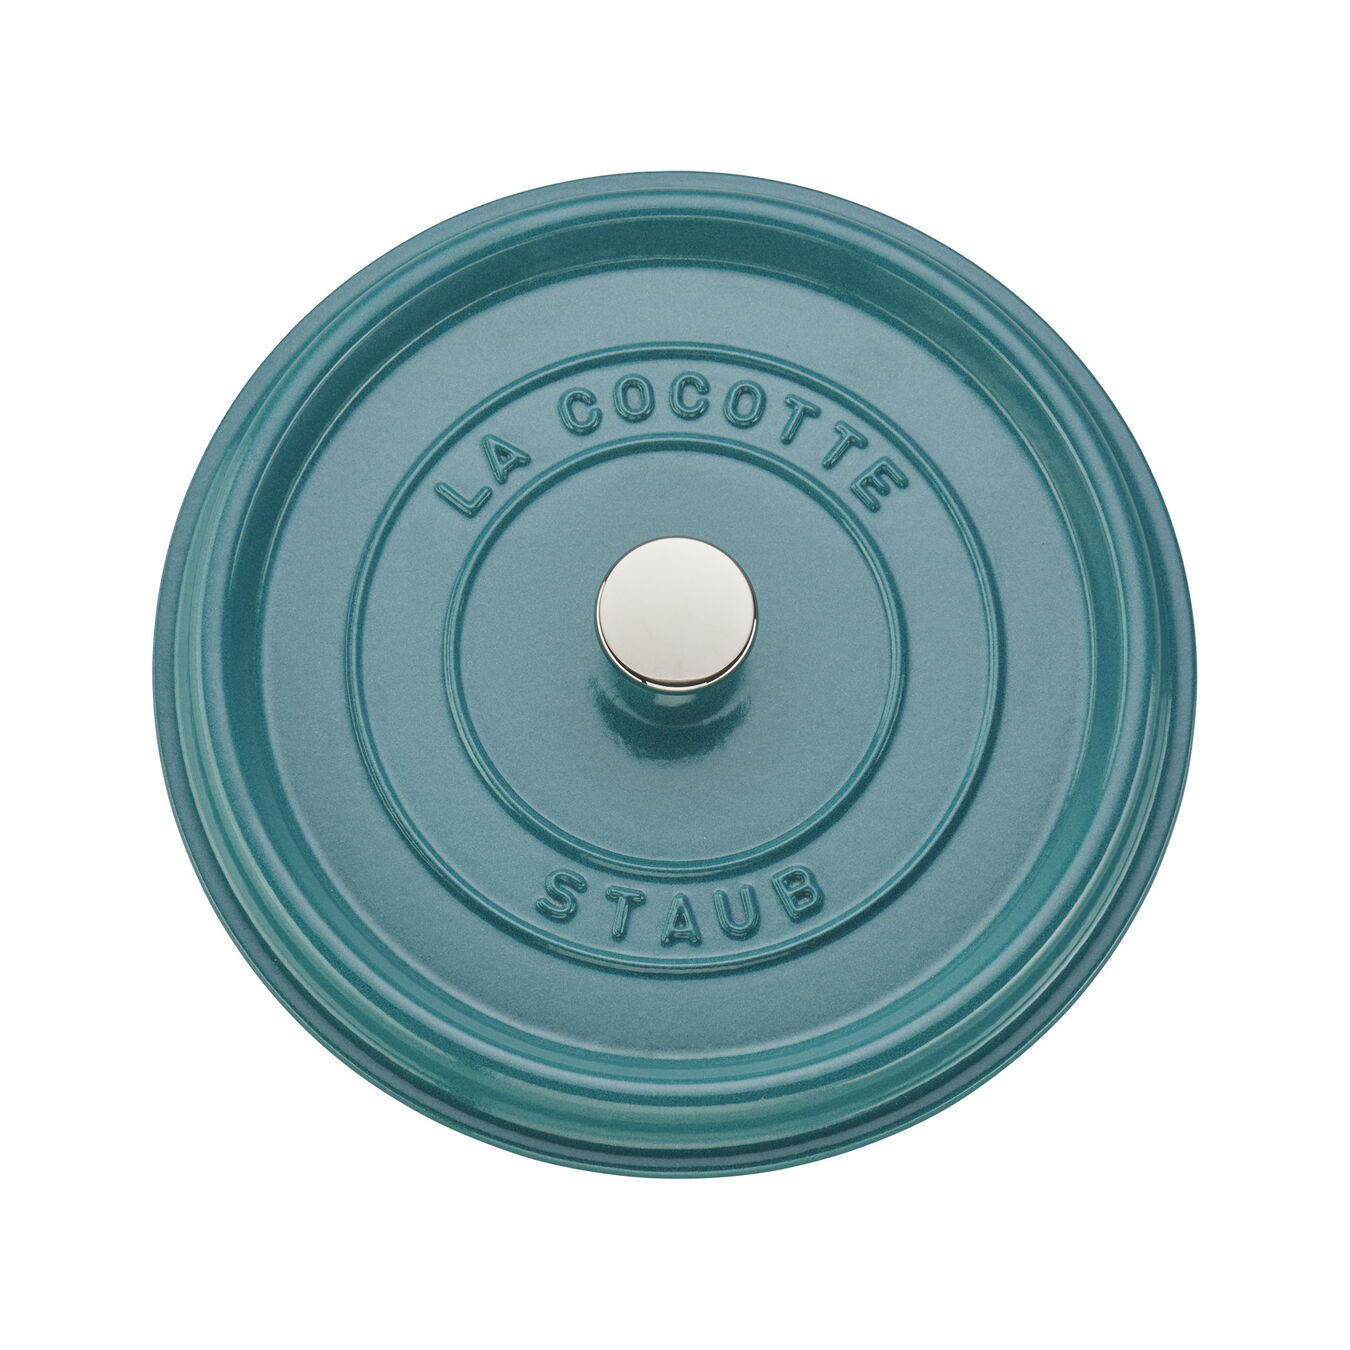 4-qt Round Cocotte - Turquoise,,large 4